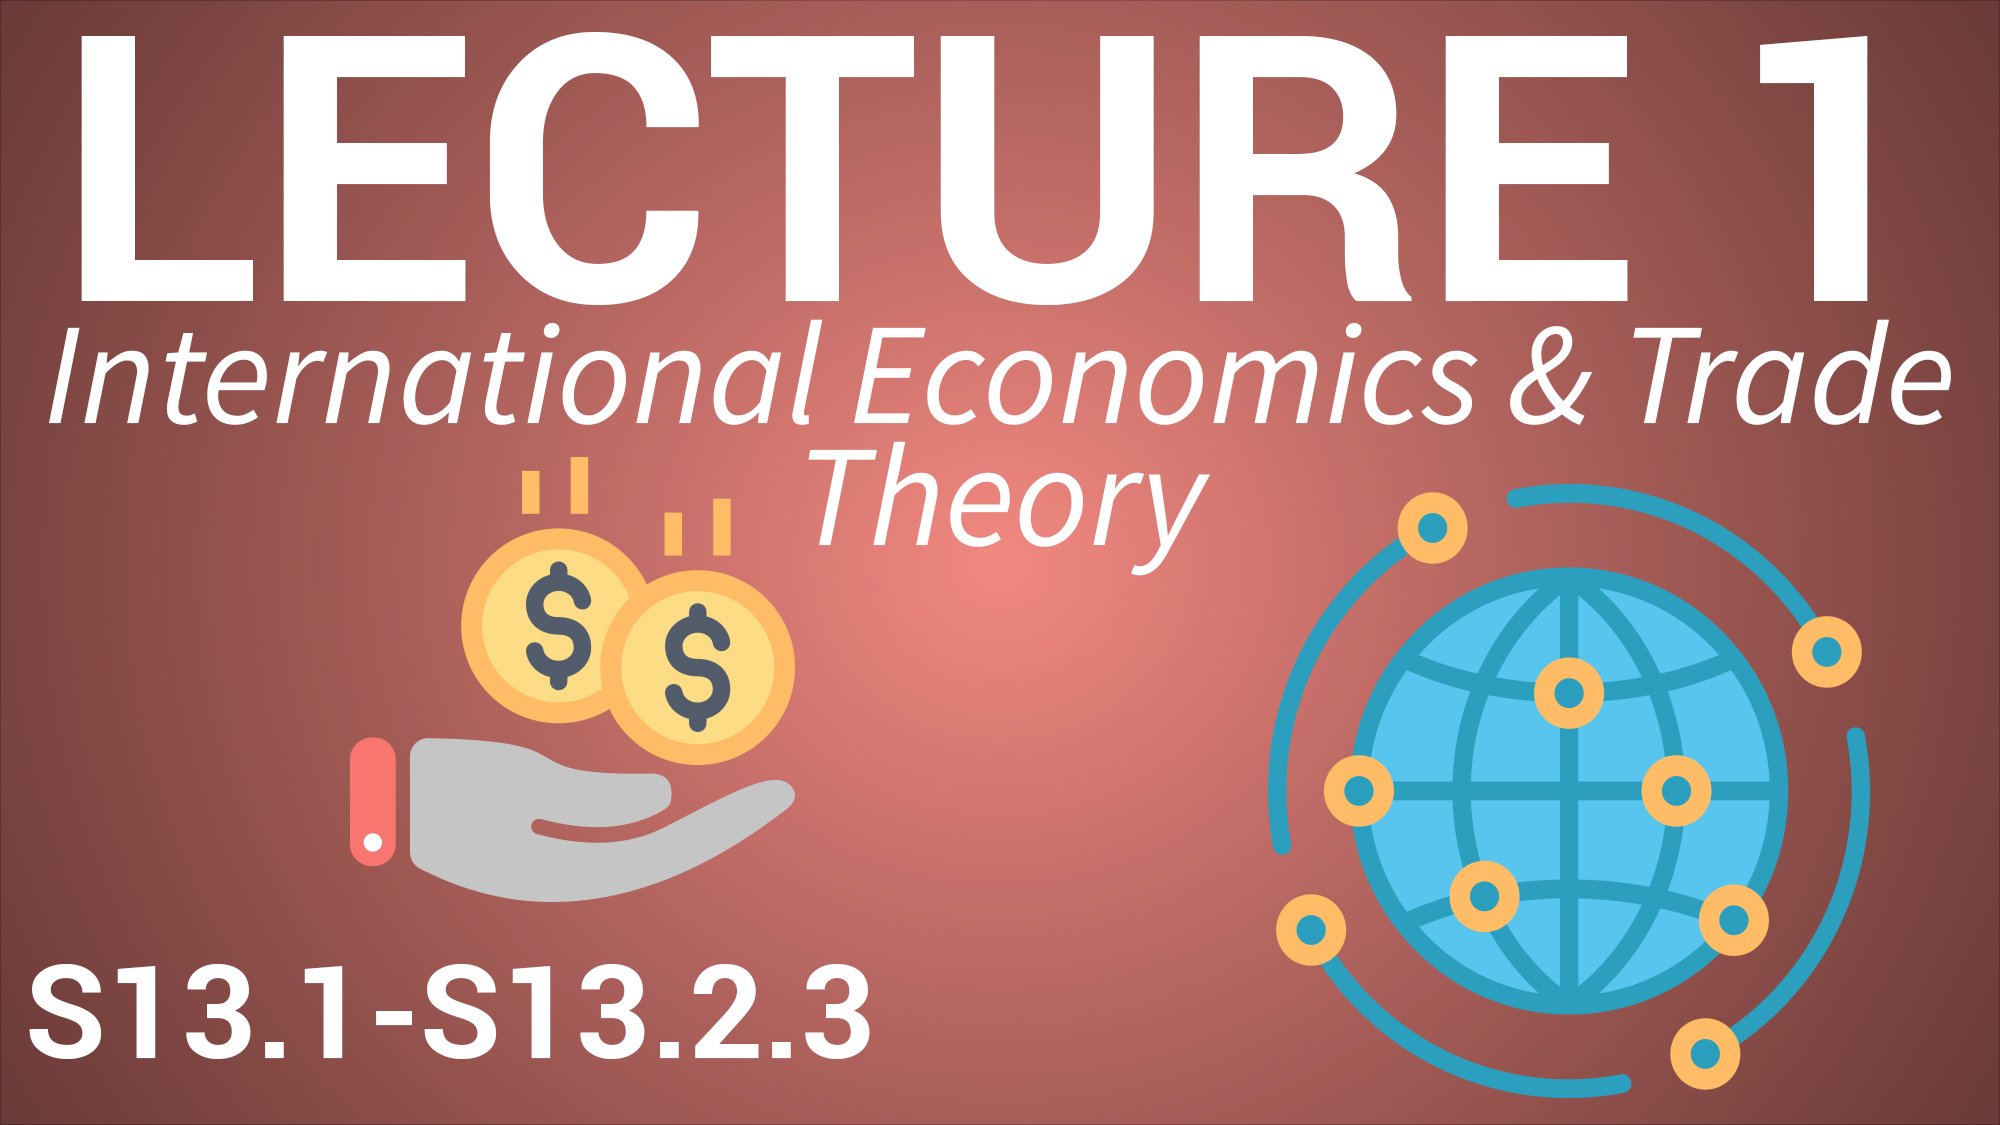 International Business for Managers - Lecture 1 - International Economics and Trade Theory image